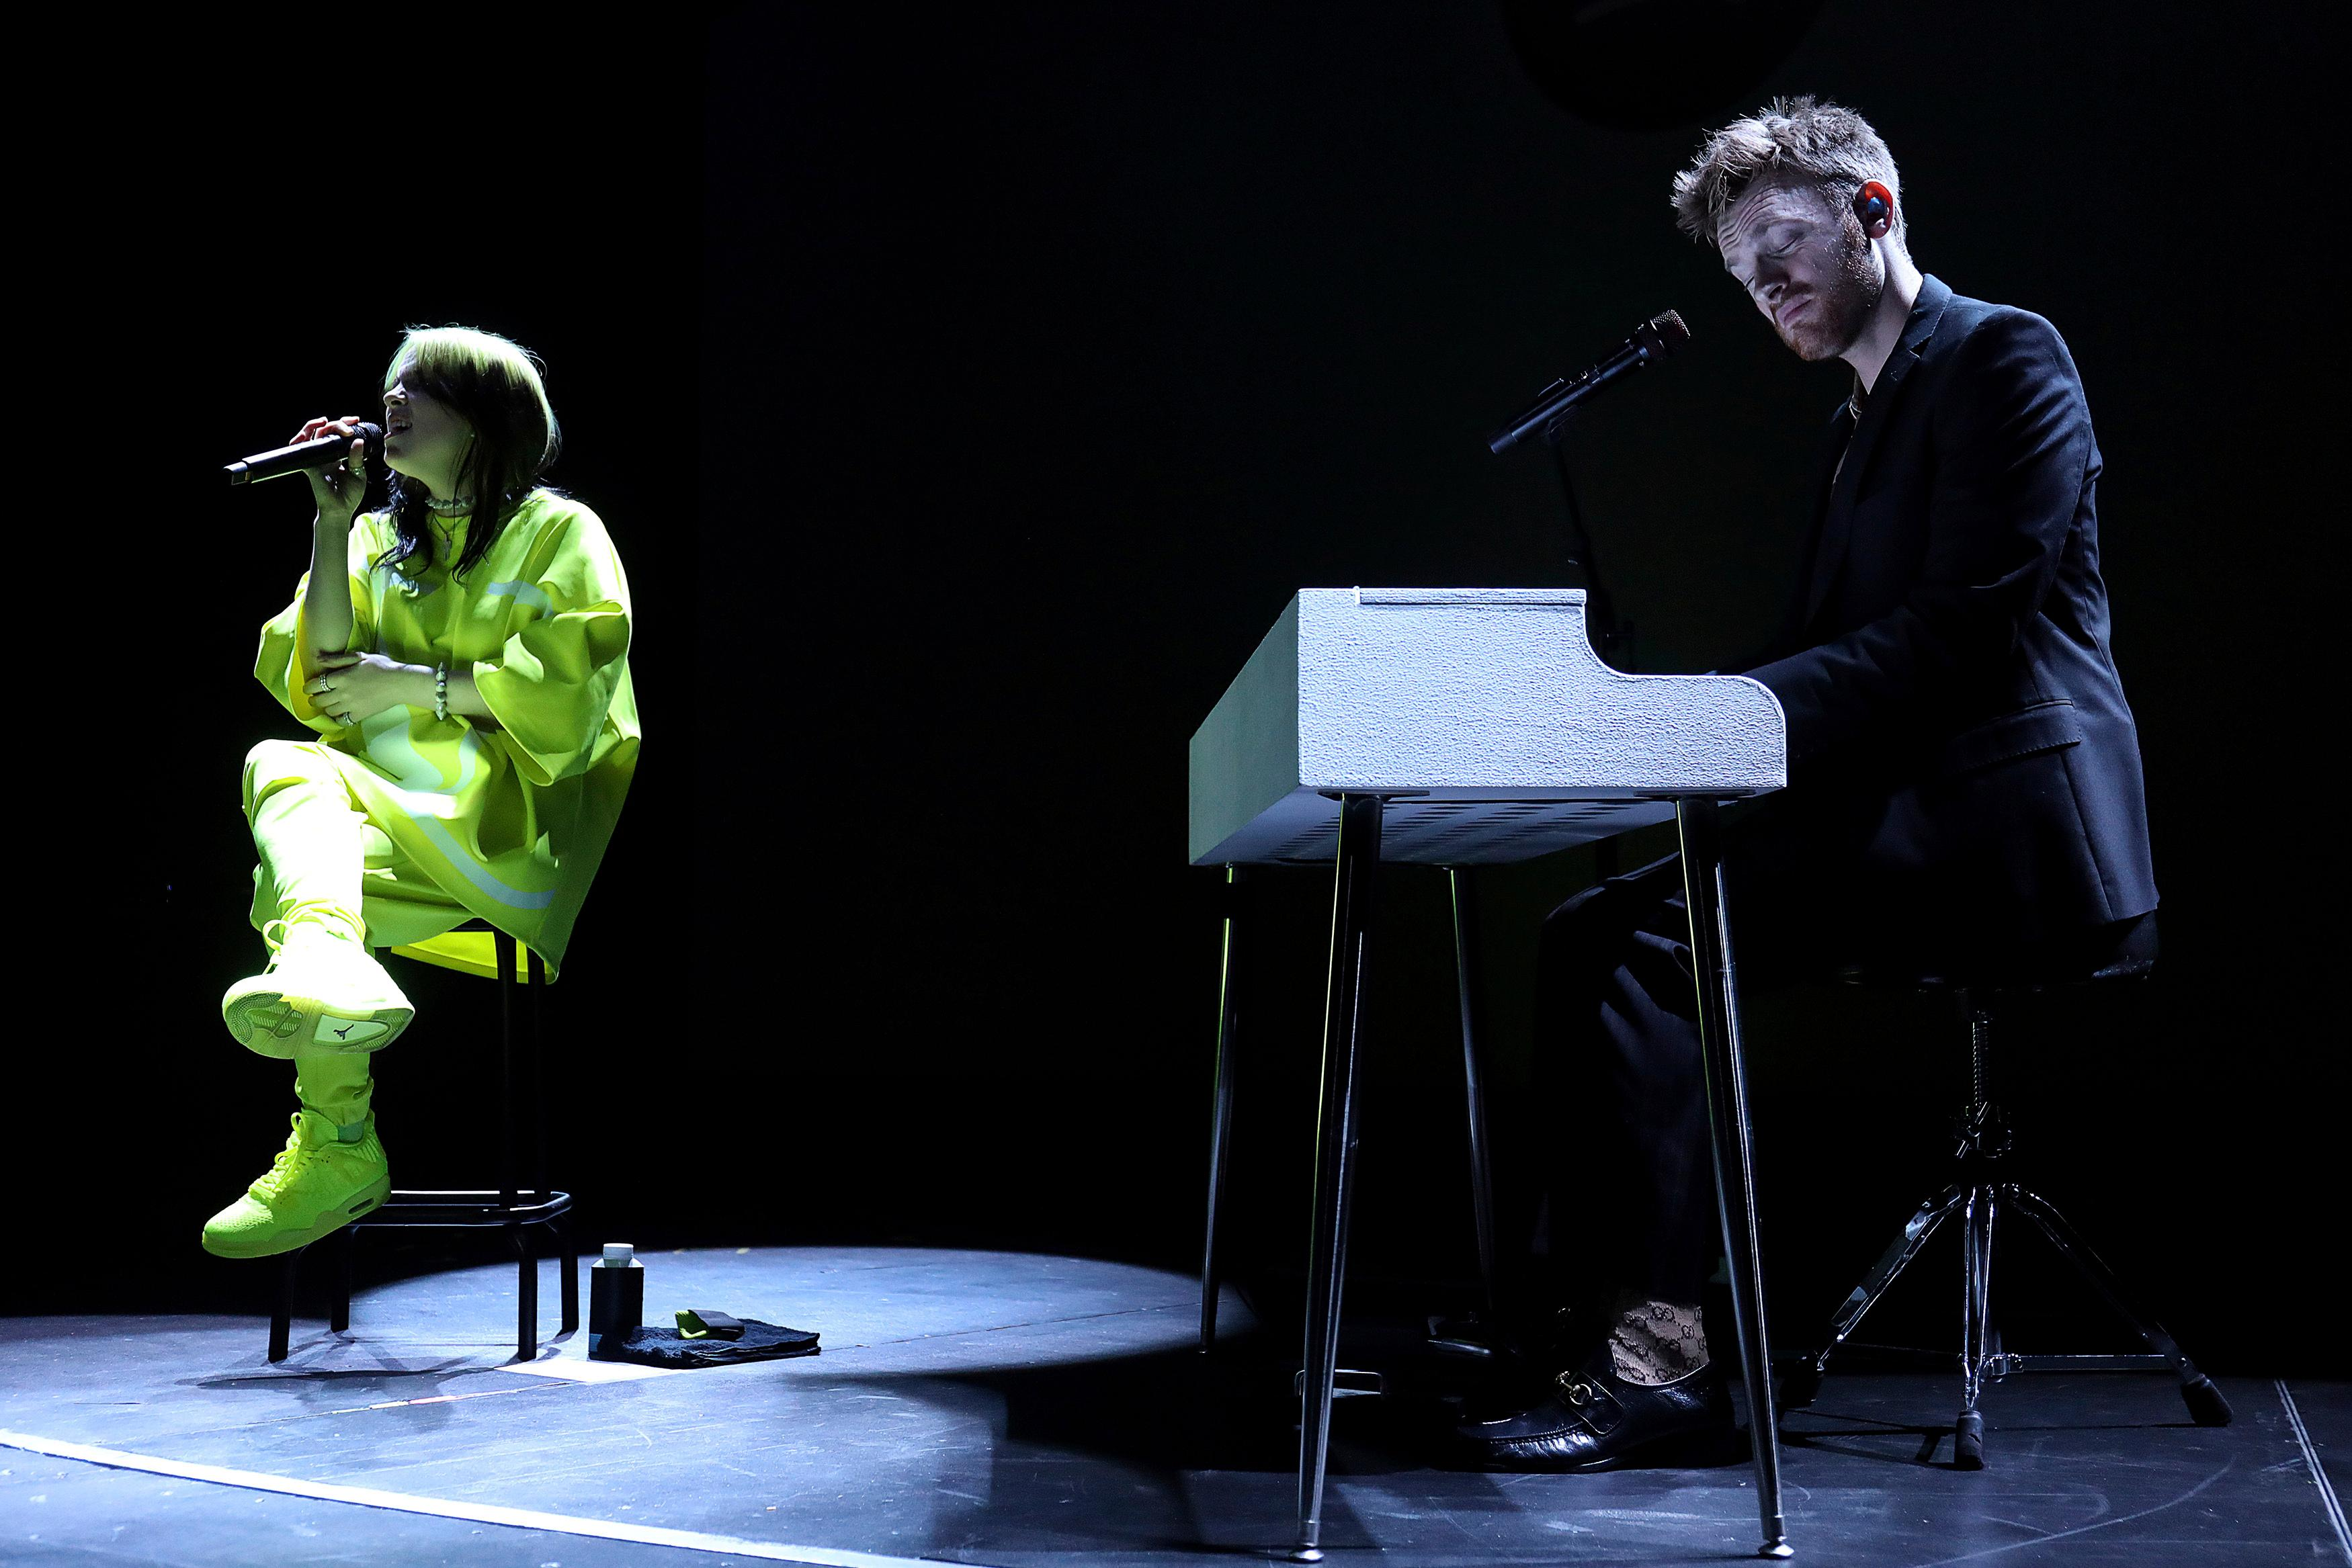 Billie Eilish, left, and her brother Finneas O'Connell perform live on stage at the 2020 Spotify Best New Artist Party at The Lot Studios on Thursday, Jan. 23, 2020, in West Hollywood, Calif. (Photo by Willy Sanjuan/Invision/AP)